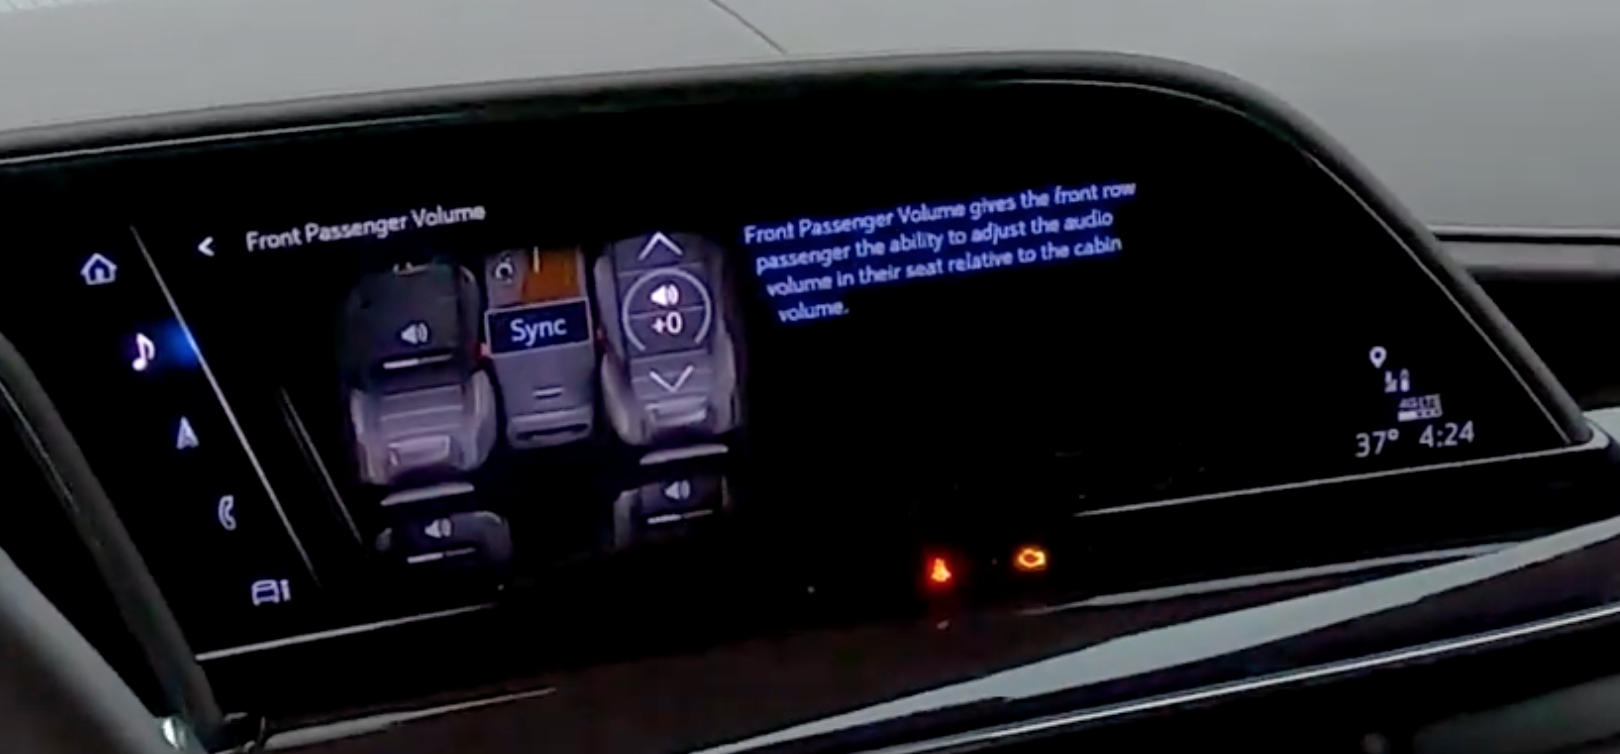 Adjusting the front passenger seat volume through an illustration of the front seats